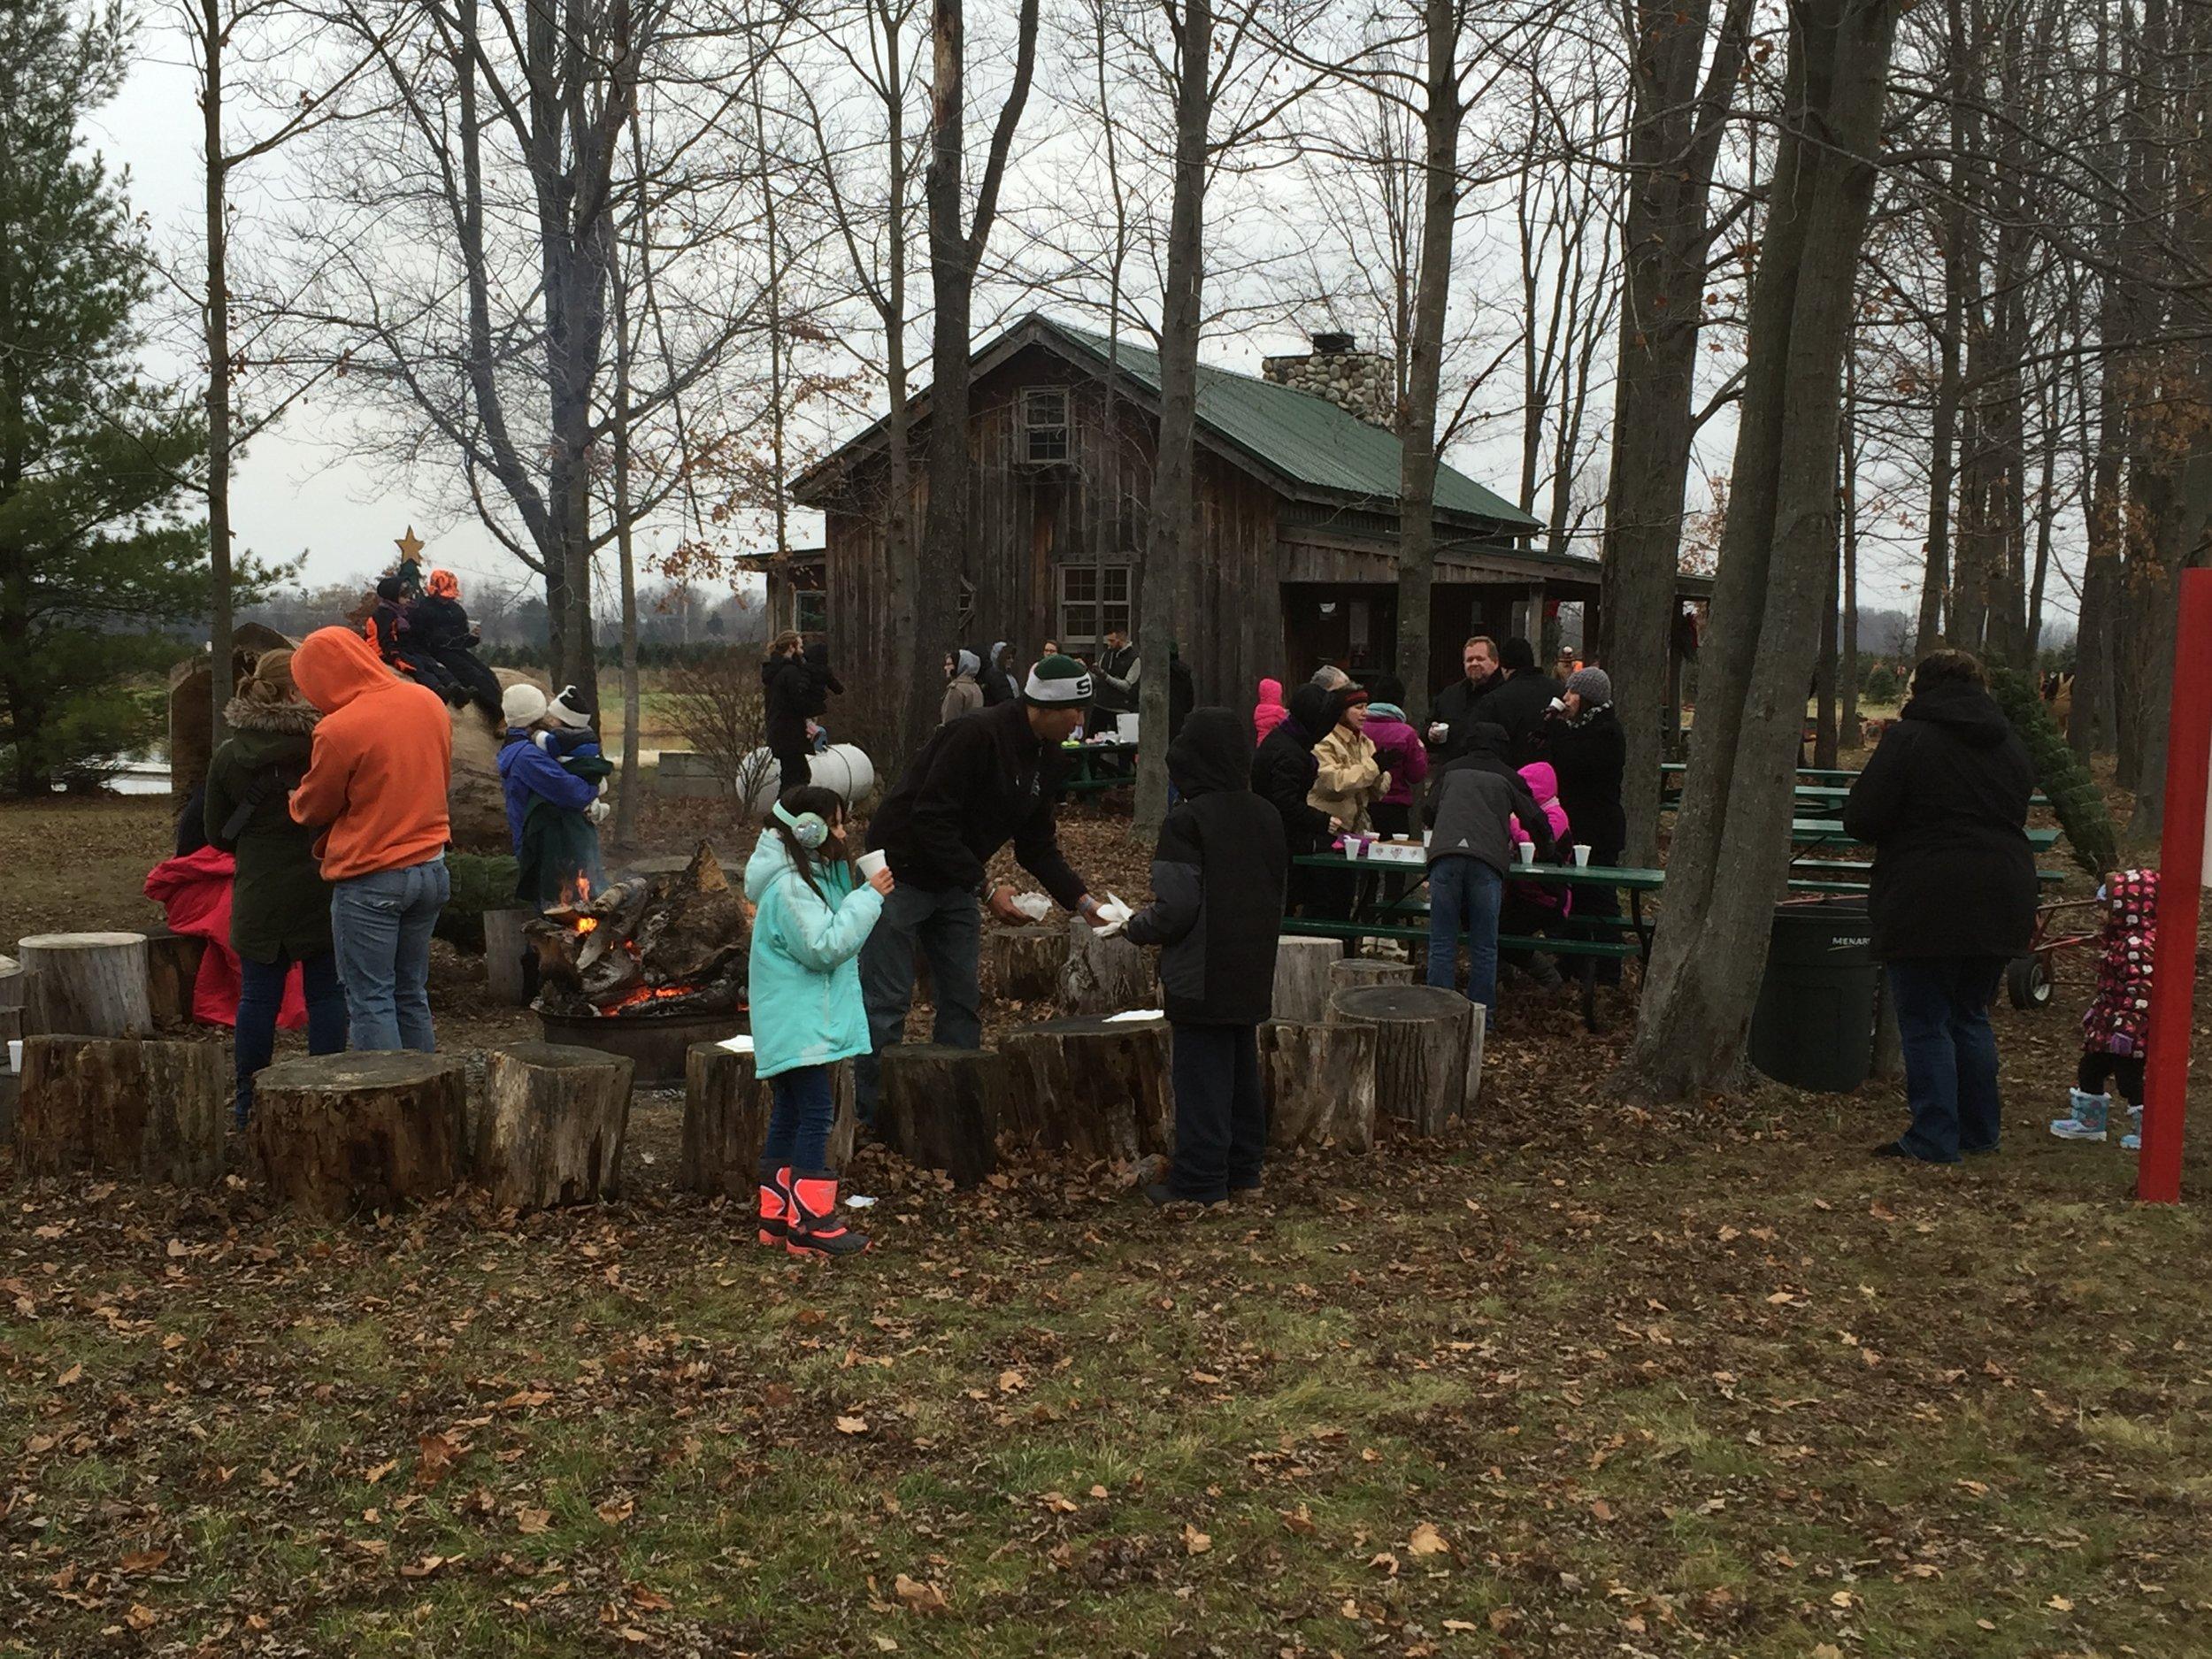 FUN WITH FAMILY & FRIENDS - HAYRIDES & OUTINGS